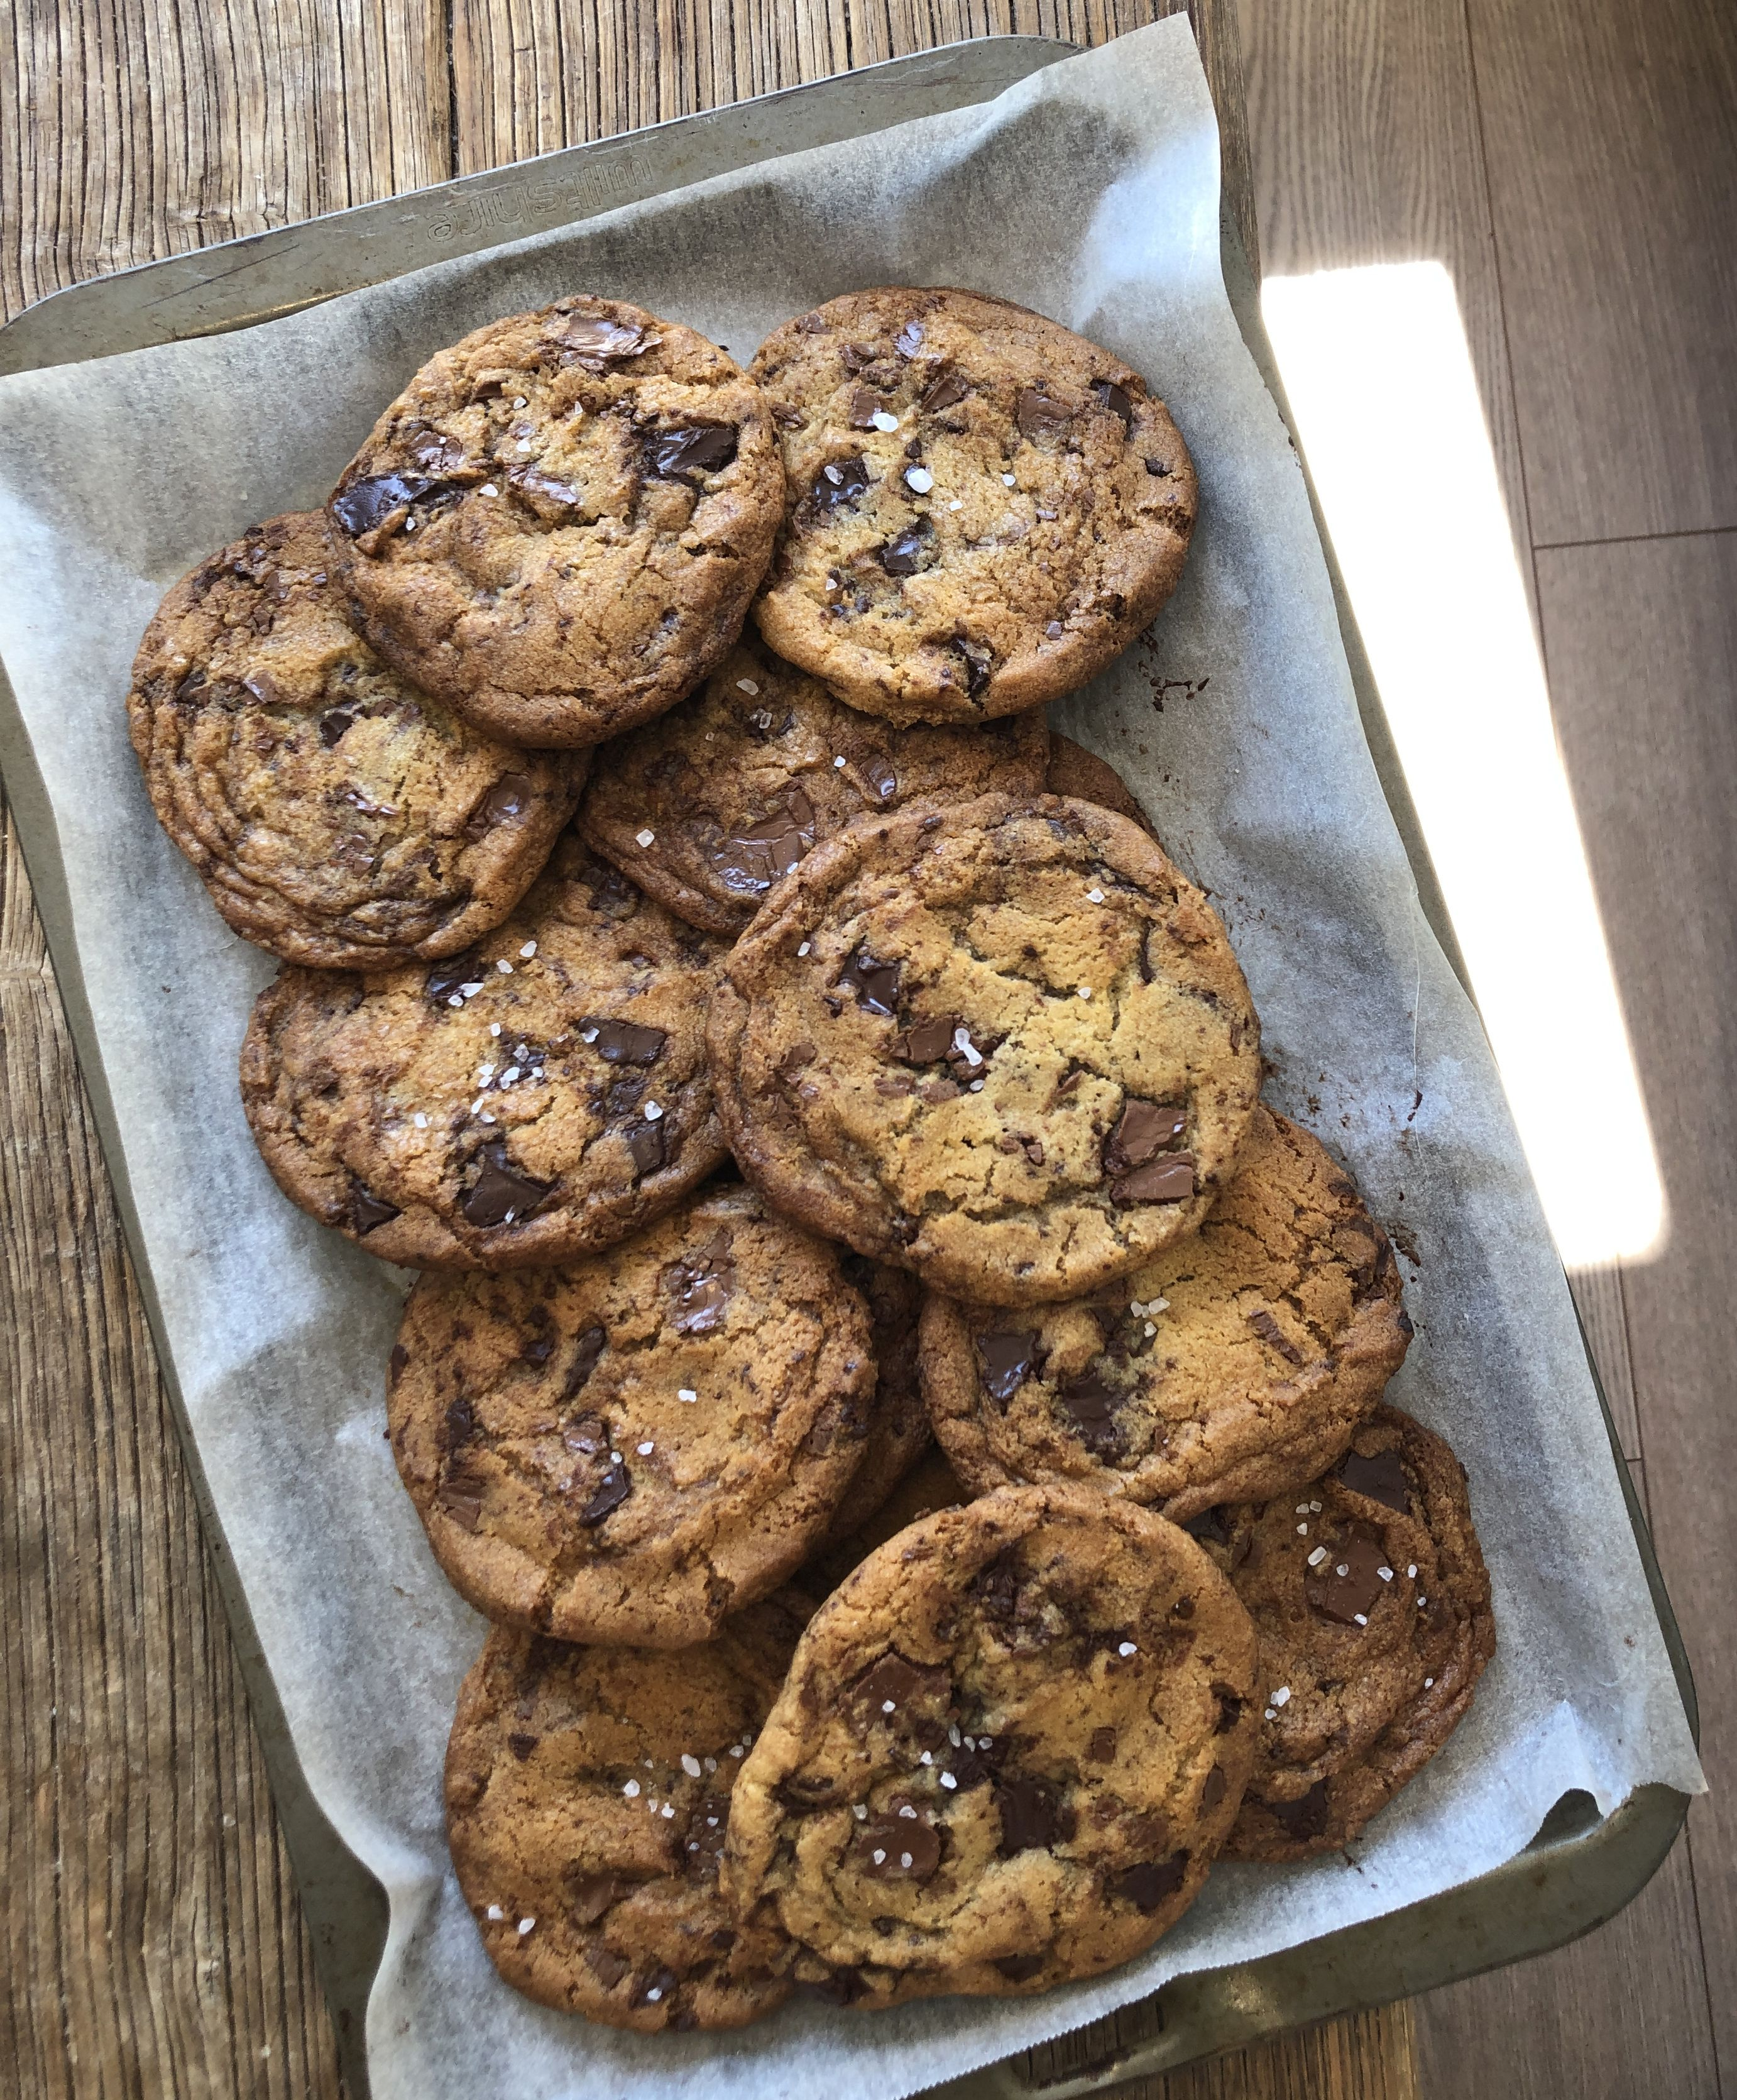 The Best Chocolate Chip Cookies Buttermilk In 2020 Chocolate Chip Cookies Chocolate Cookie Recipes Best Chocolate Chip Cookie